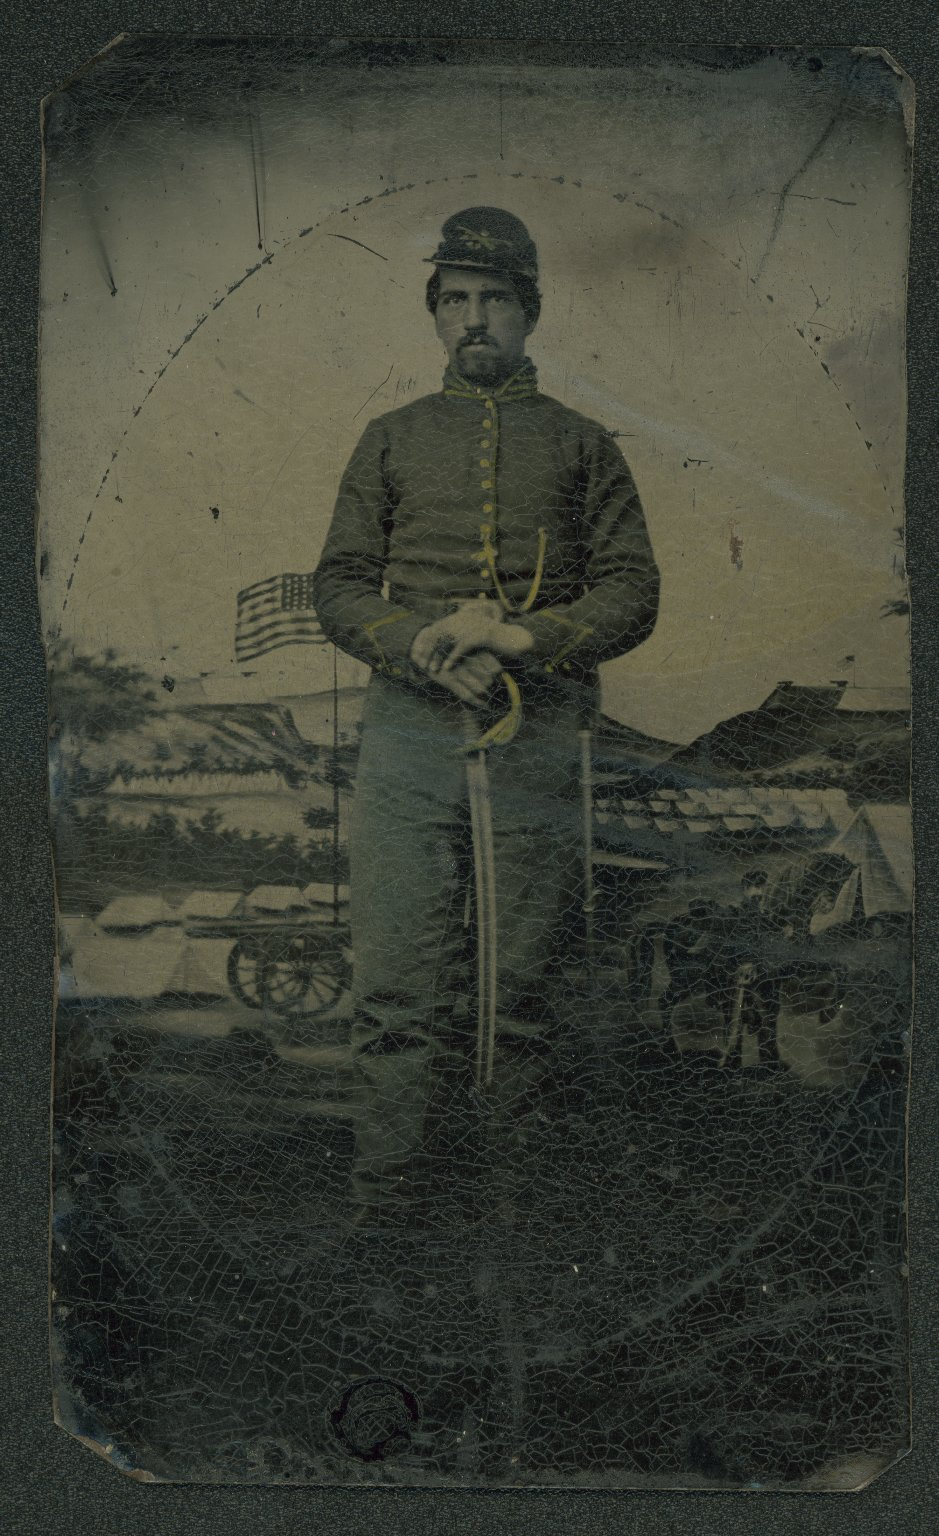 U. S. Civil War soldier portrait